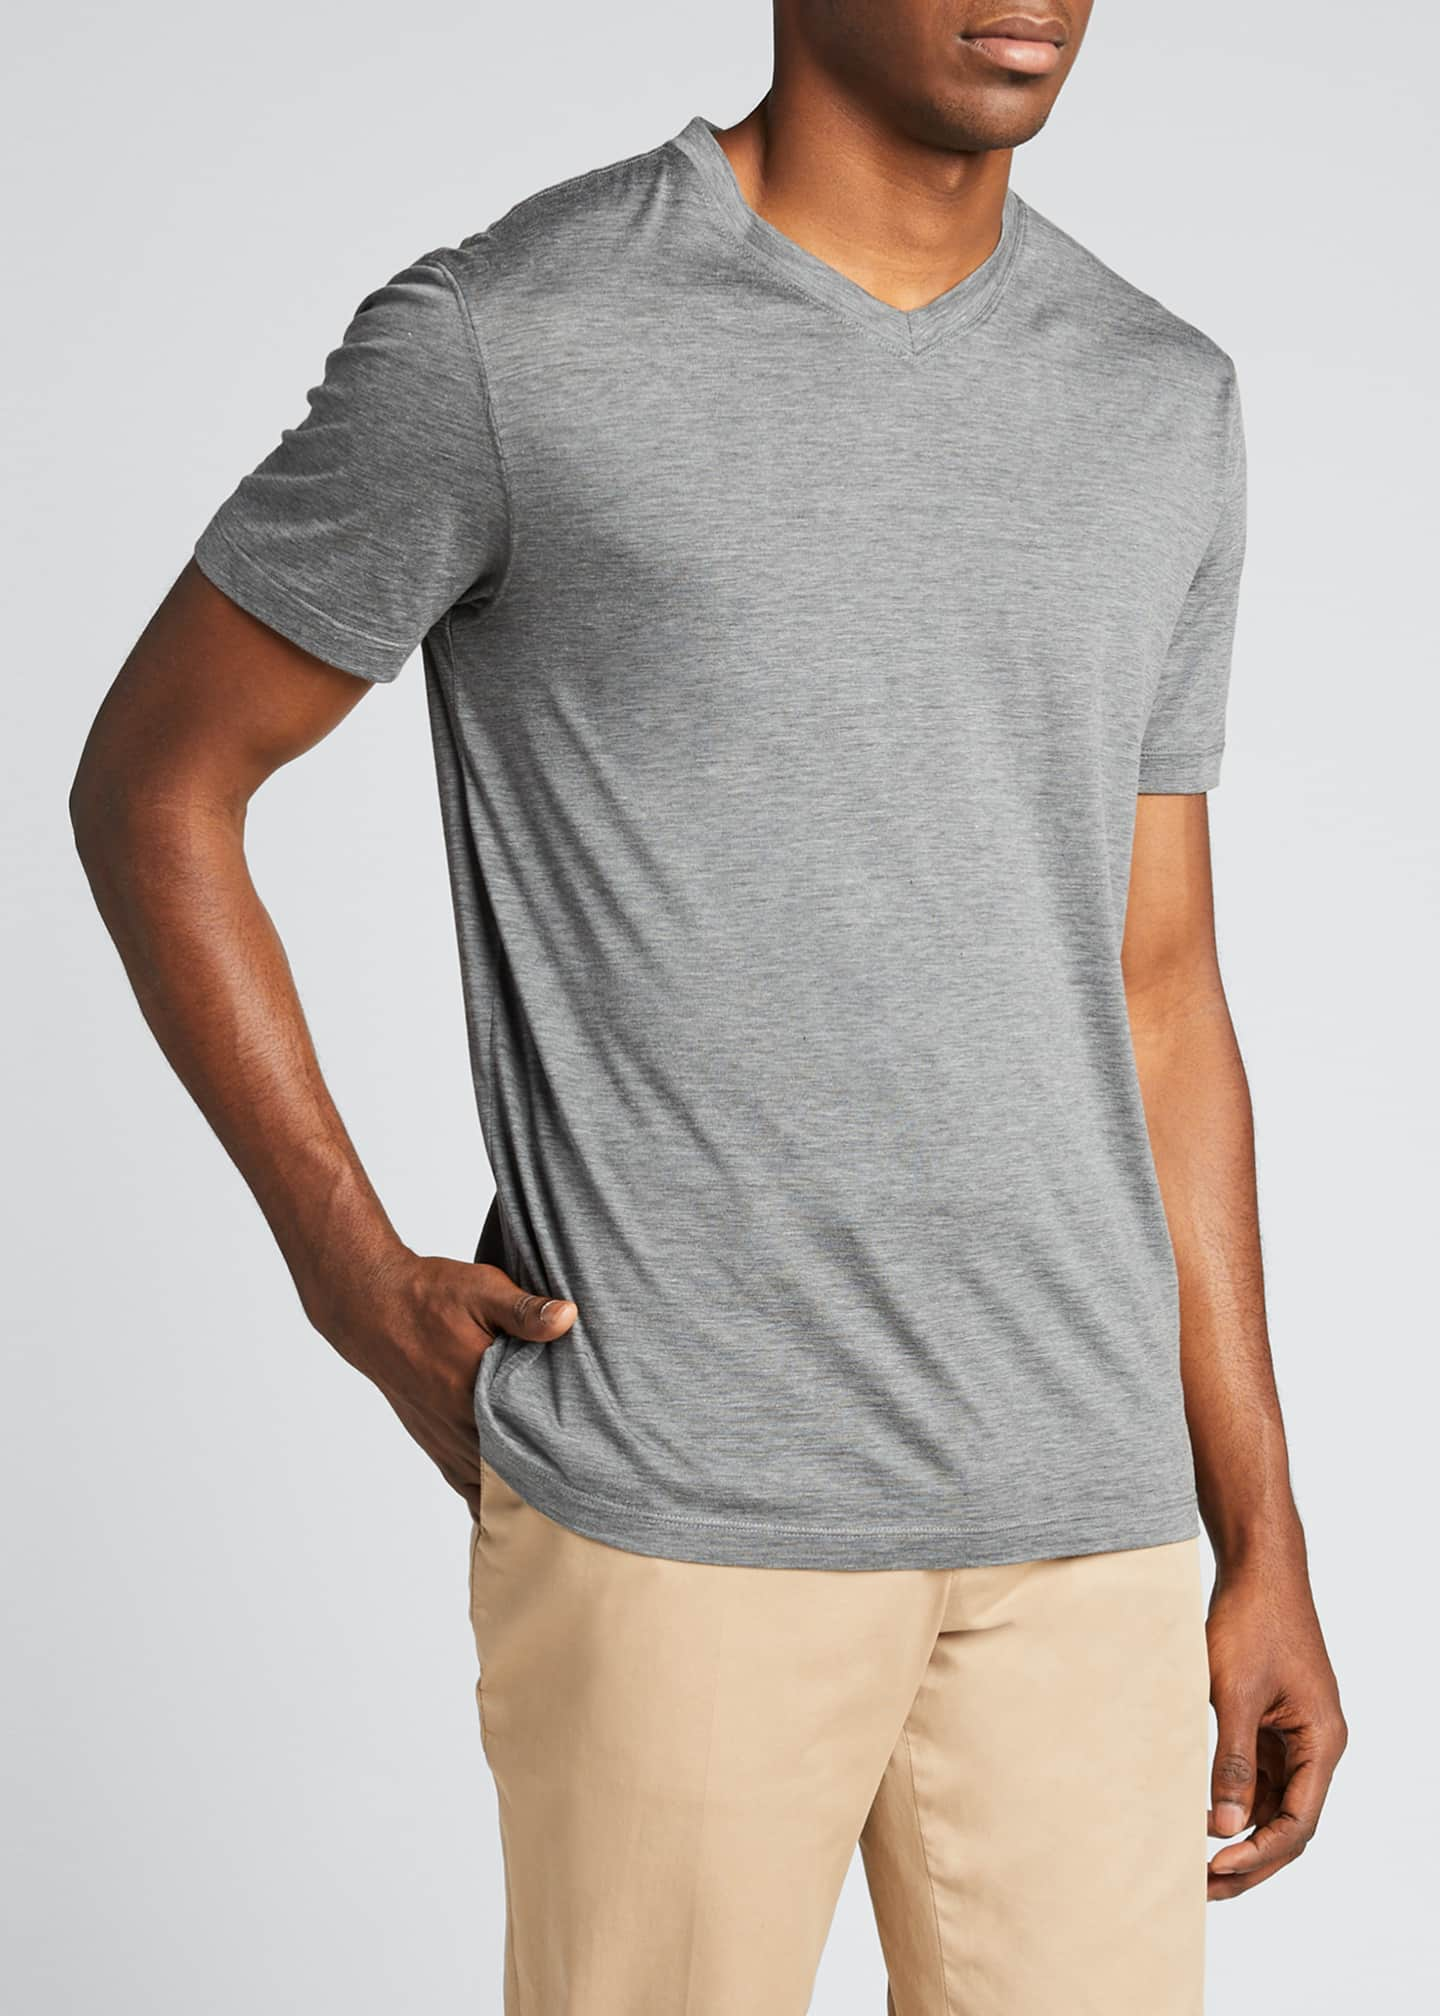 Image 3 of 5: Men's V-Neck Short-Sleeve Sweater T-Shirt